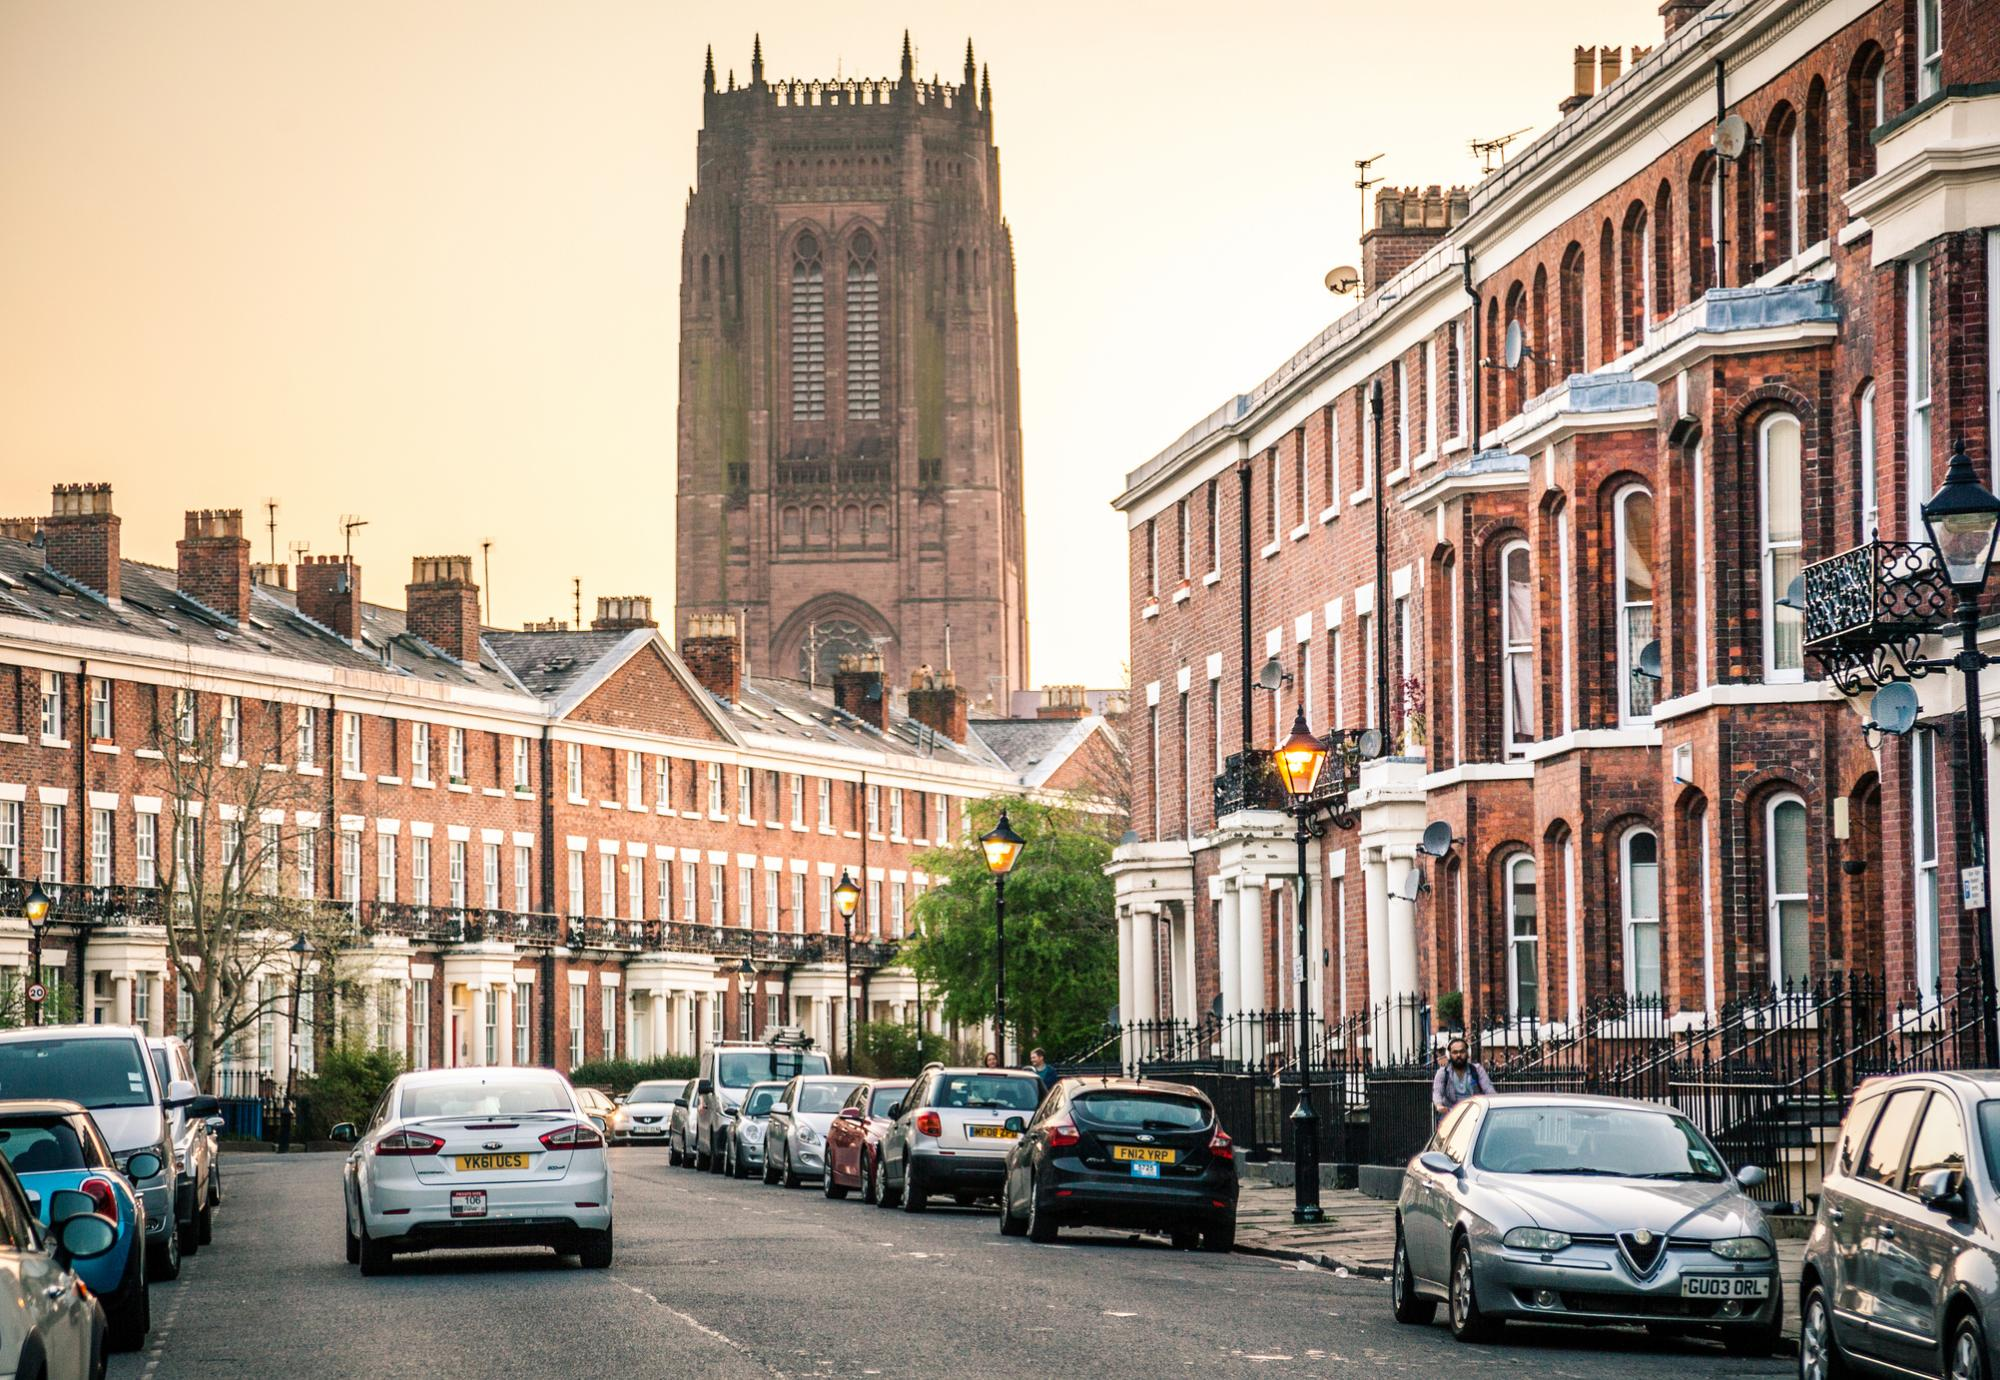 Liverpool Cathedral and housing